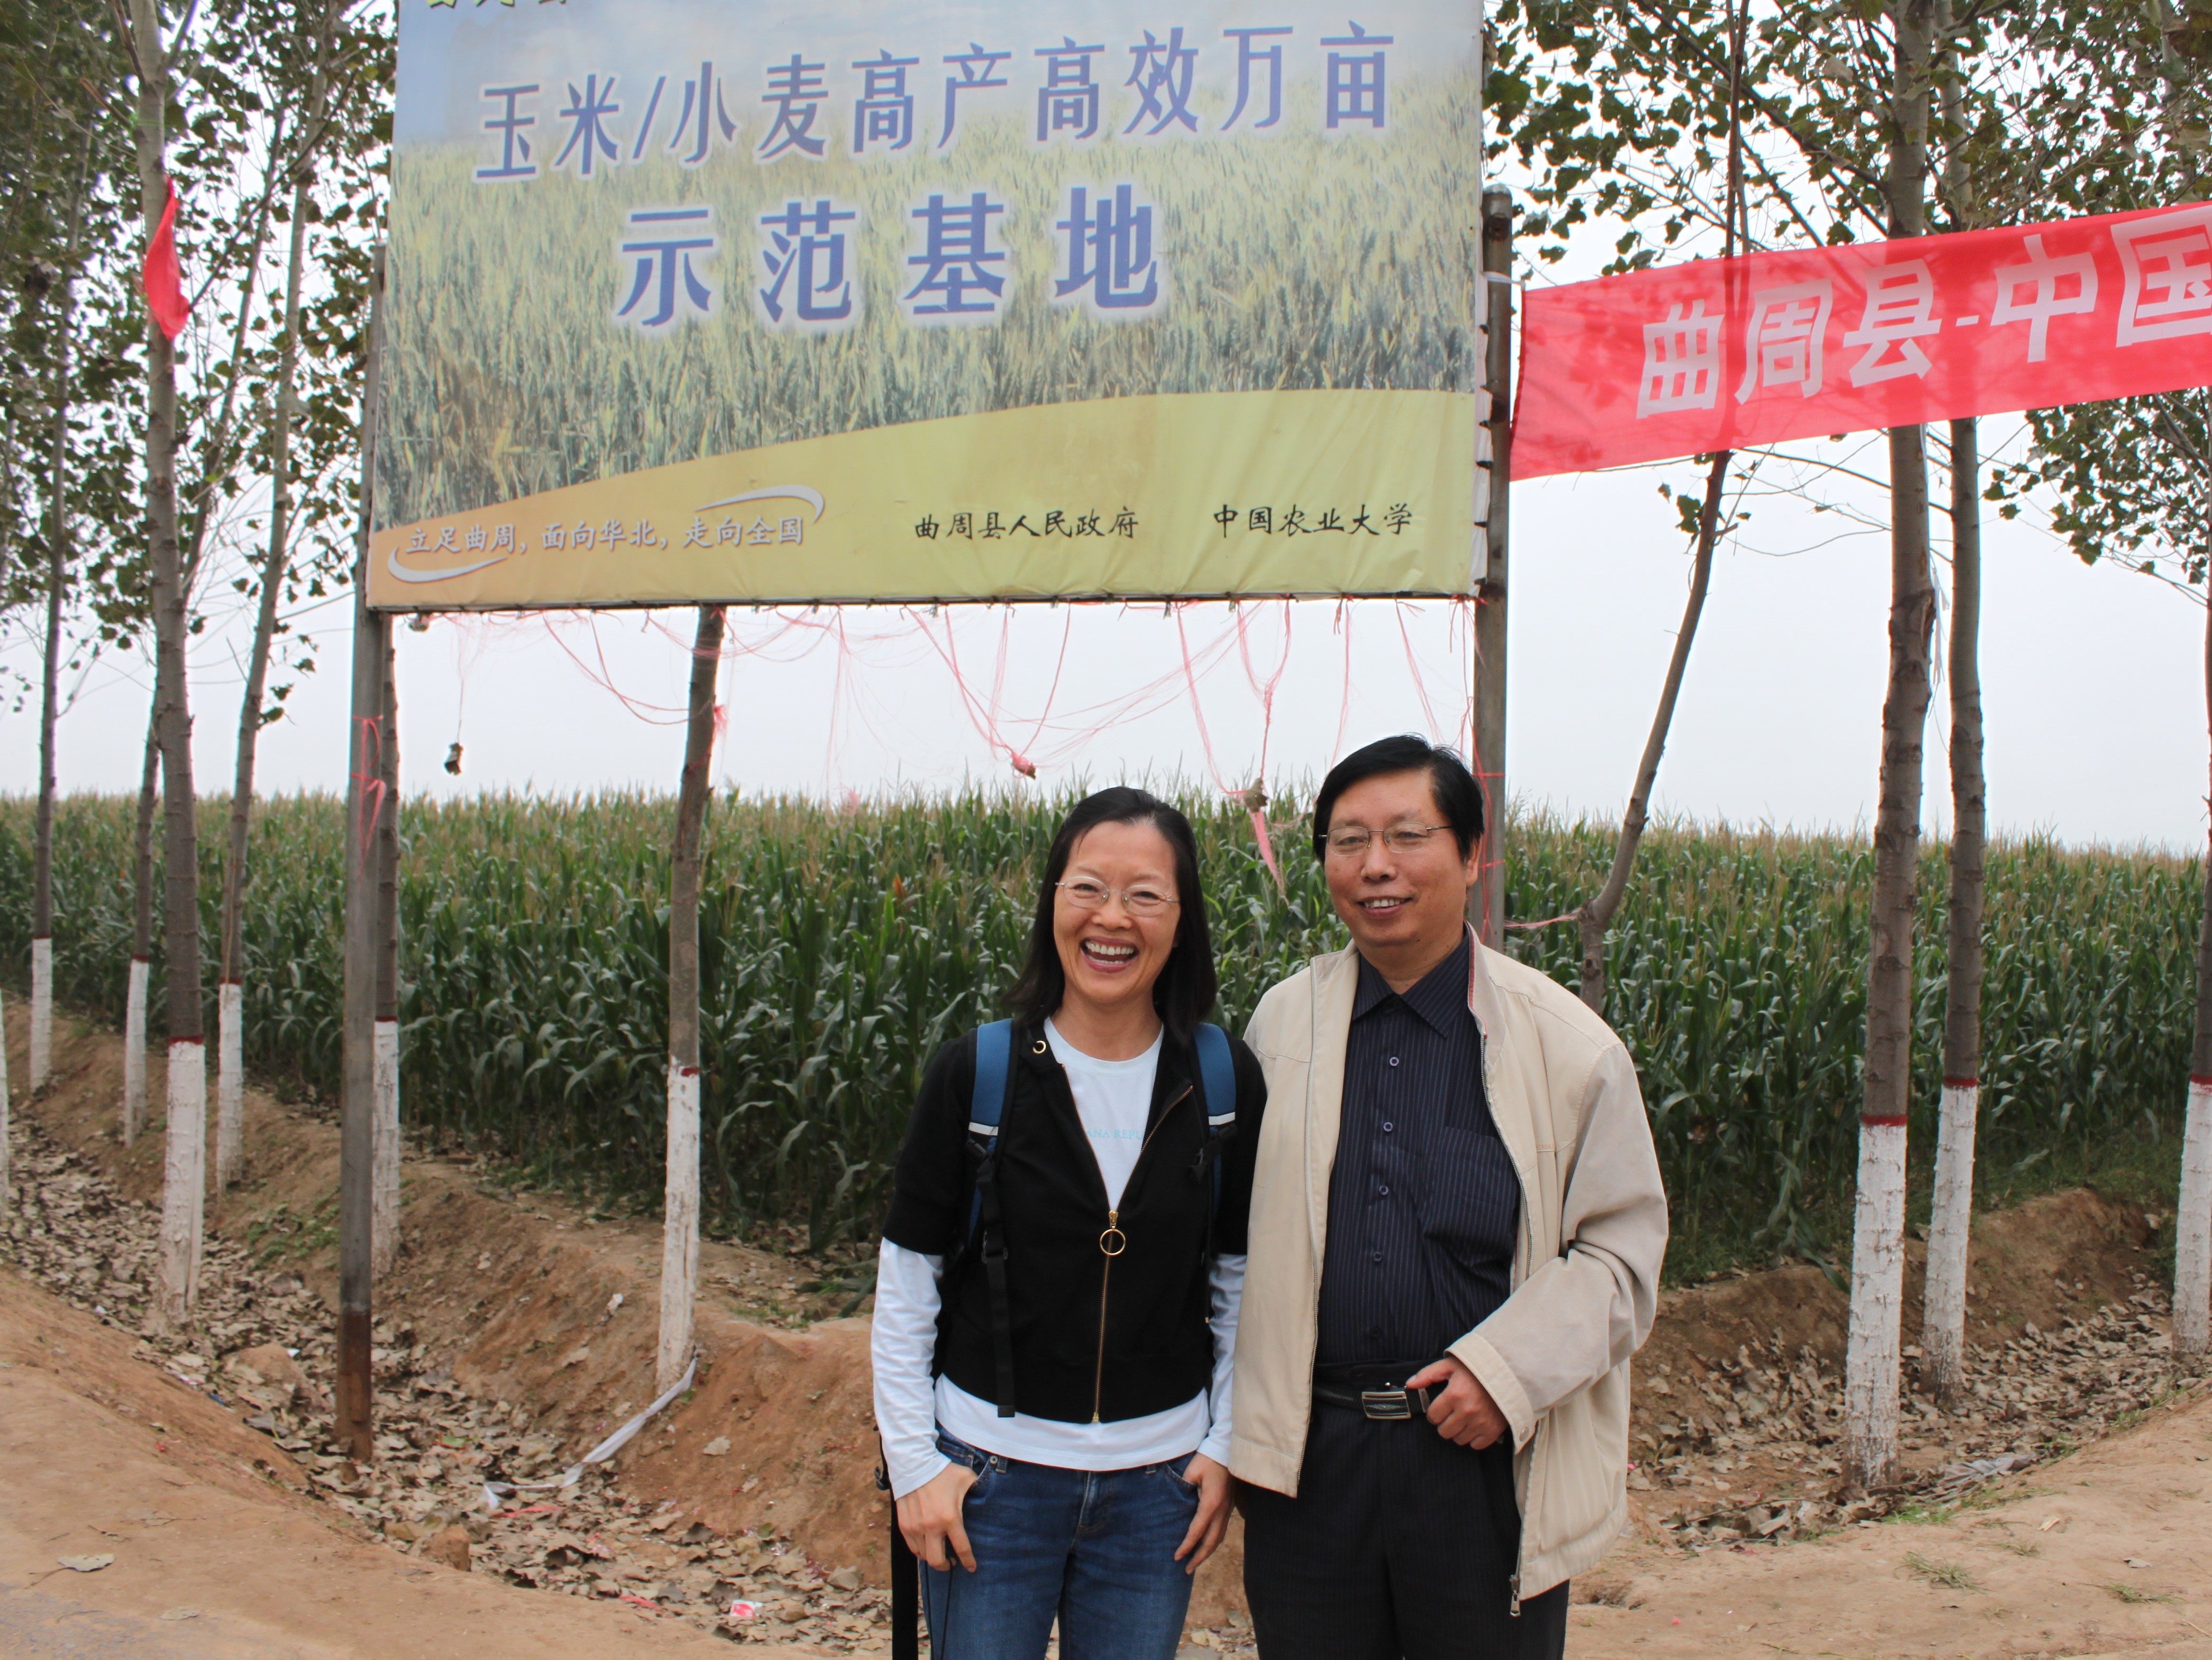 Penn's Zhengxia Dou and coauthor Xiaolin Li at a field demonstration in Quzhou